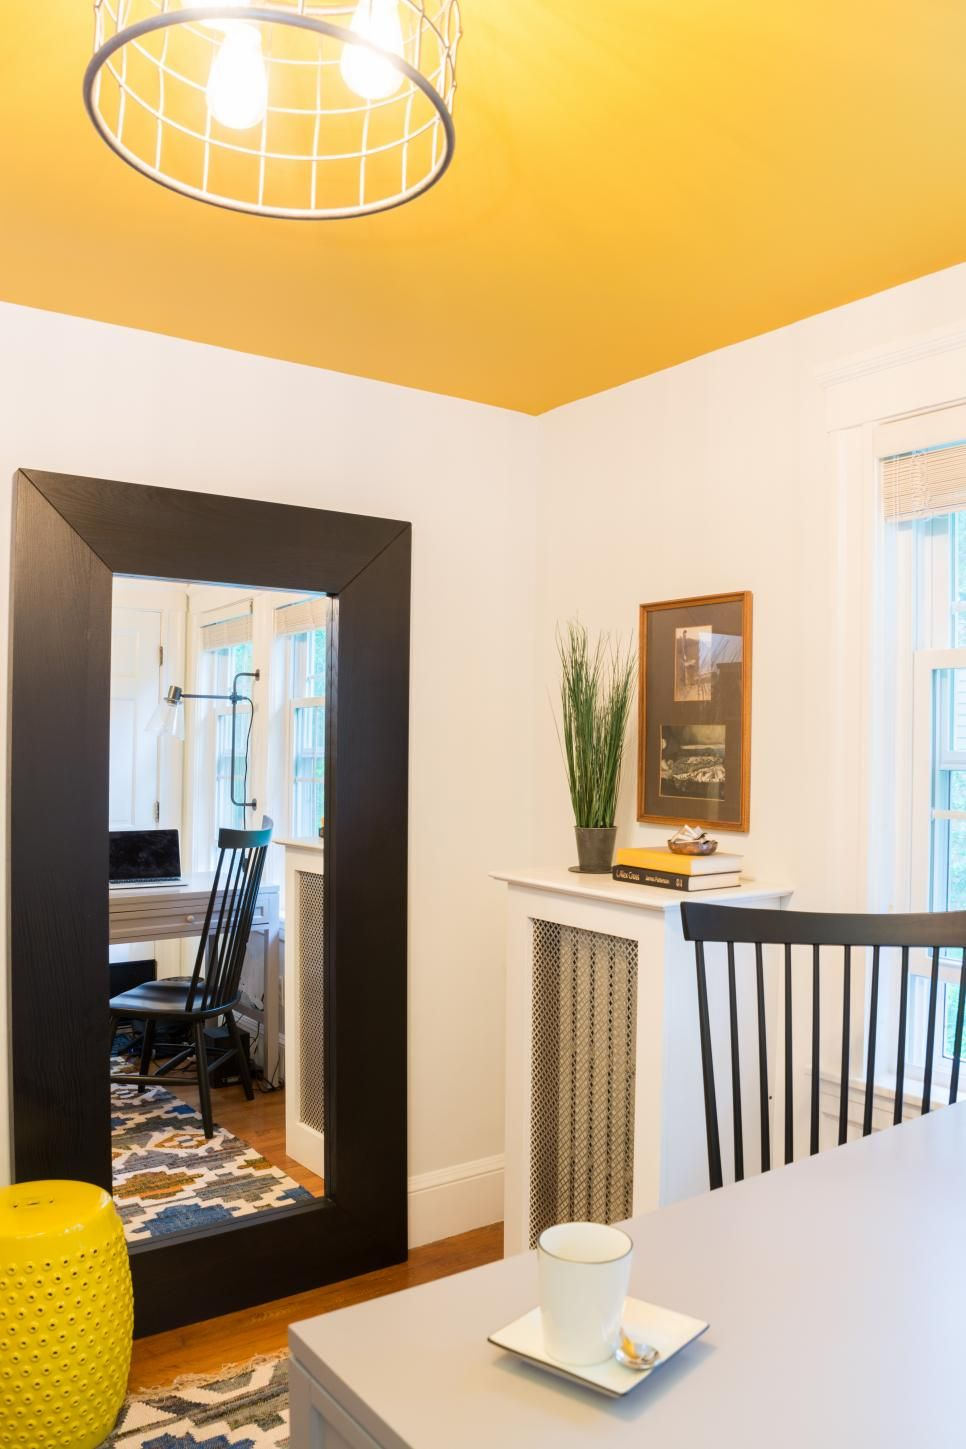 15 Ways To Decorate With Goldenrod Yellow Color Palette And Schemes For Rooms In Your Home Hgtv Yellow Bedroom Walls Yellow Painted Rooms Colored Ceiling